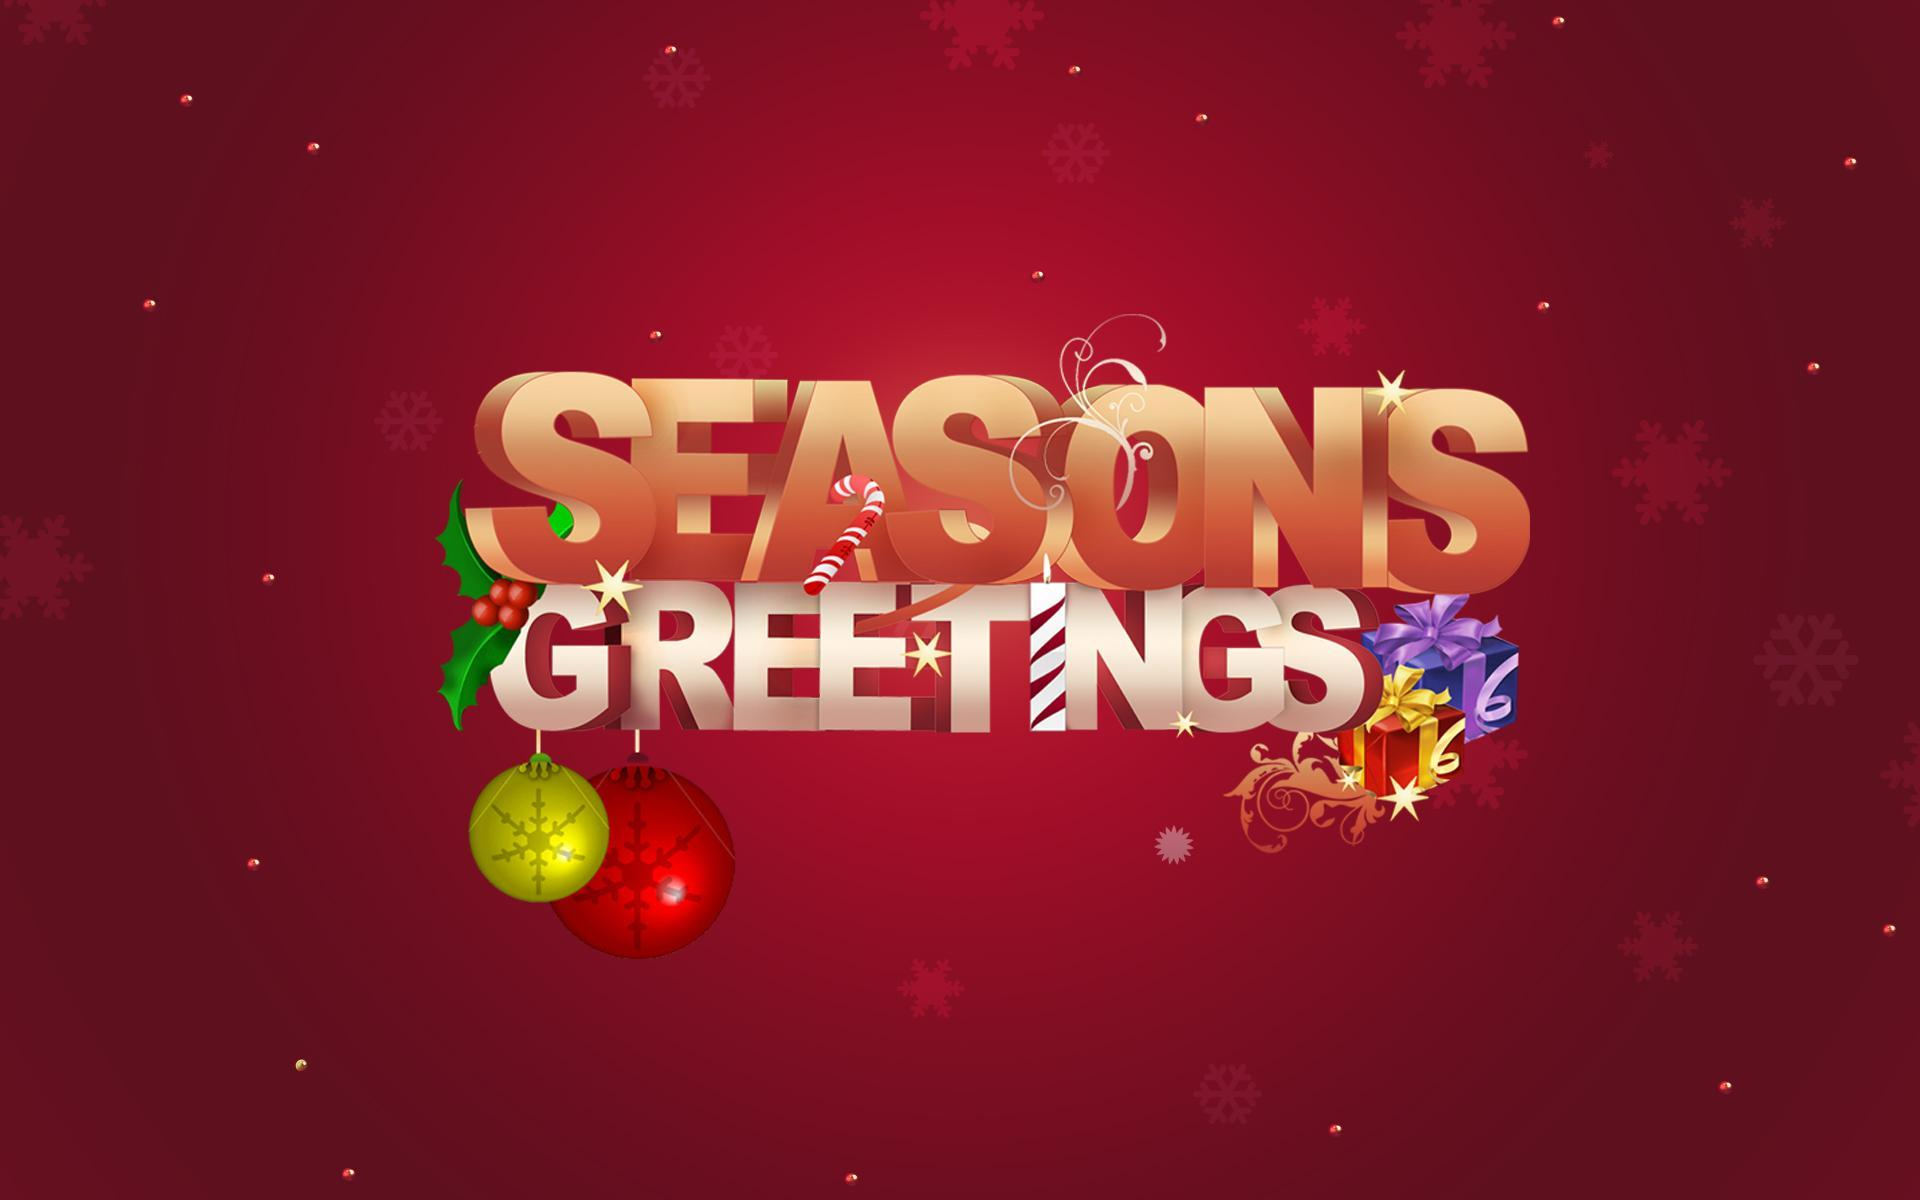 Seasons_Greetings_2013